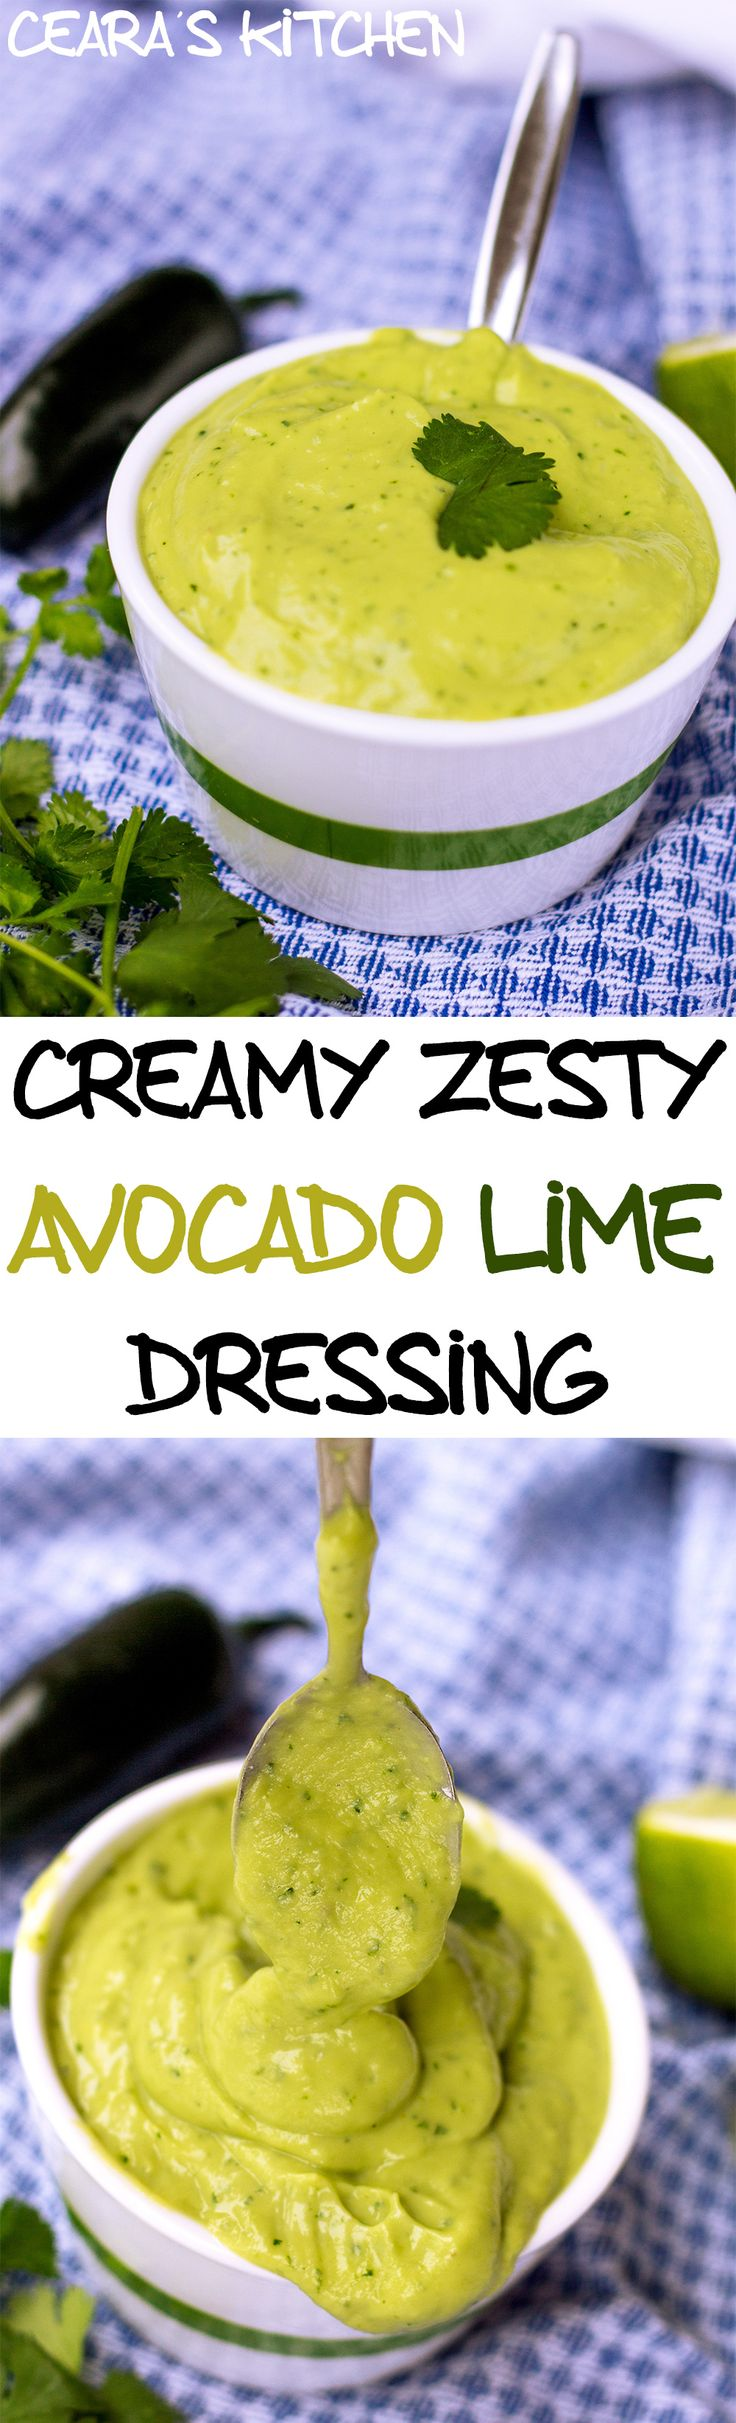 This Zesty Creamy Avocado Lime Dressing is my go-to sauce, dip, dressing with Mexican food. #mexicanfood #recipe #vegan #veganfood #glutenfree